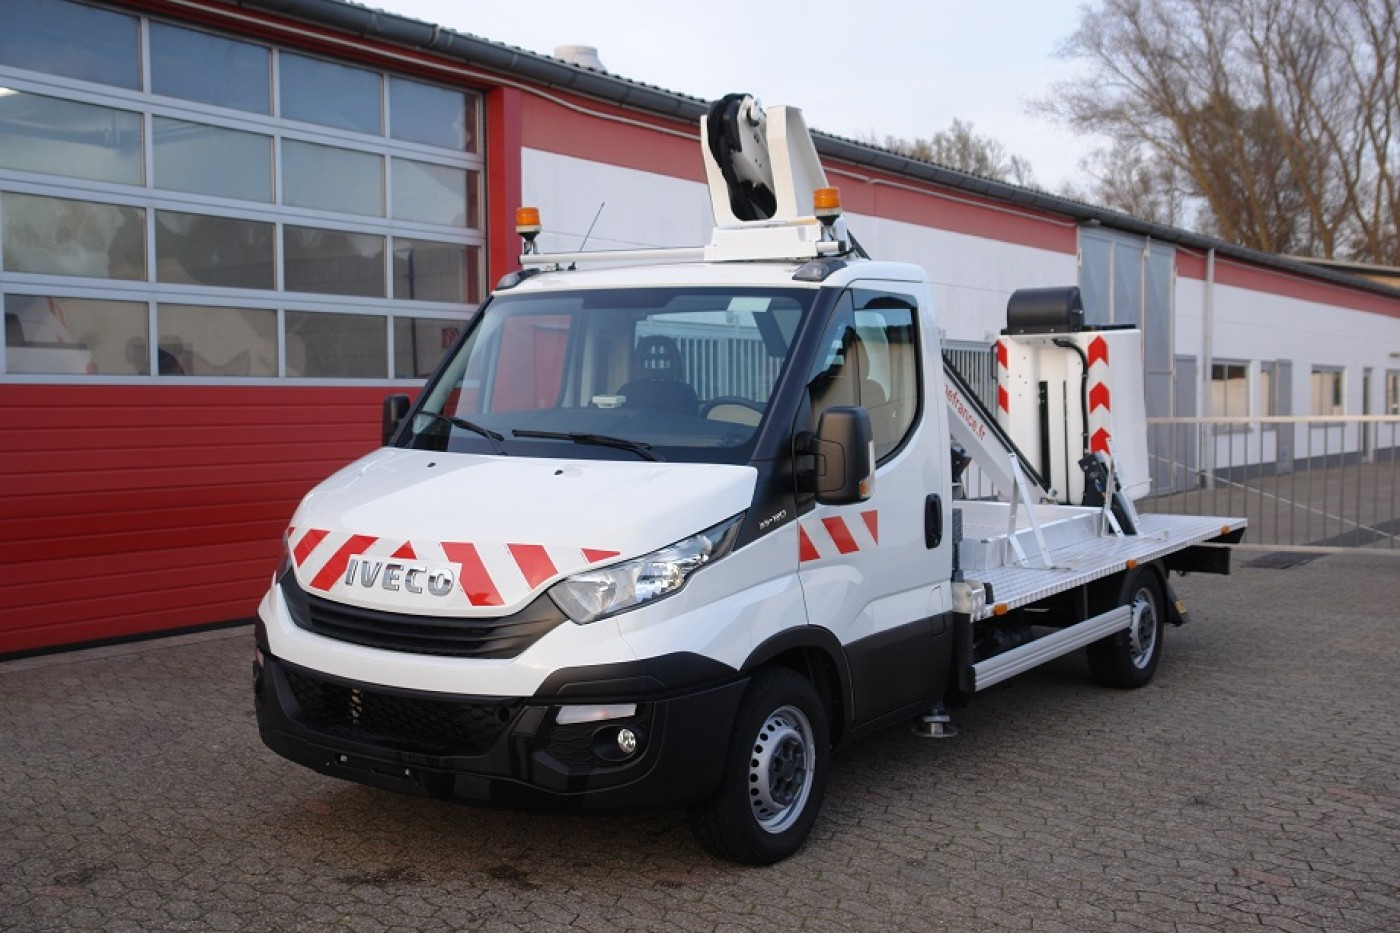 Iveco Daily 35S13 nacela prb Time France LT130TB 13m Carlig de tractare